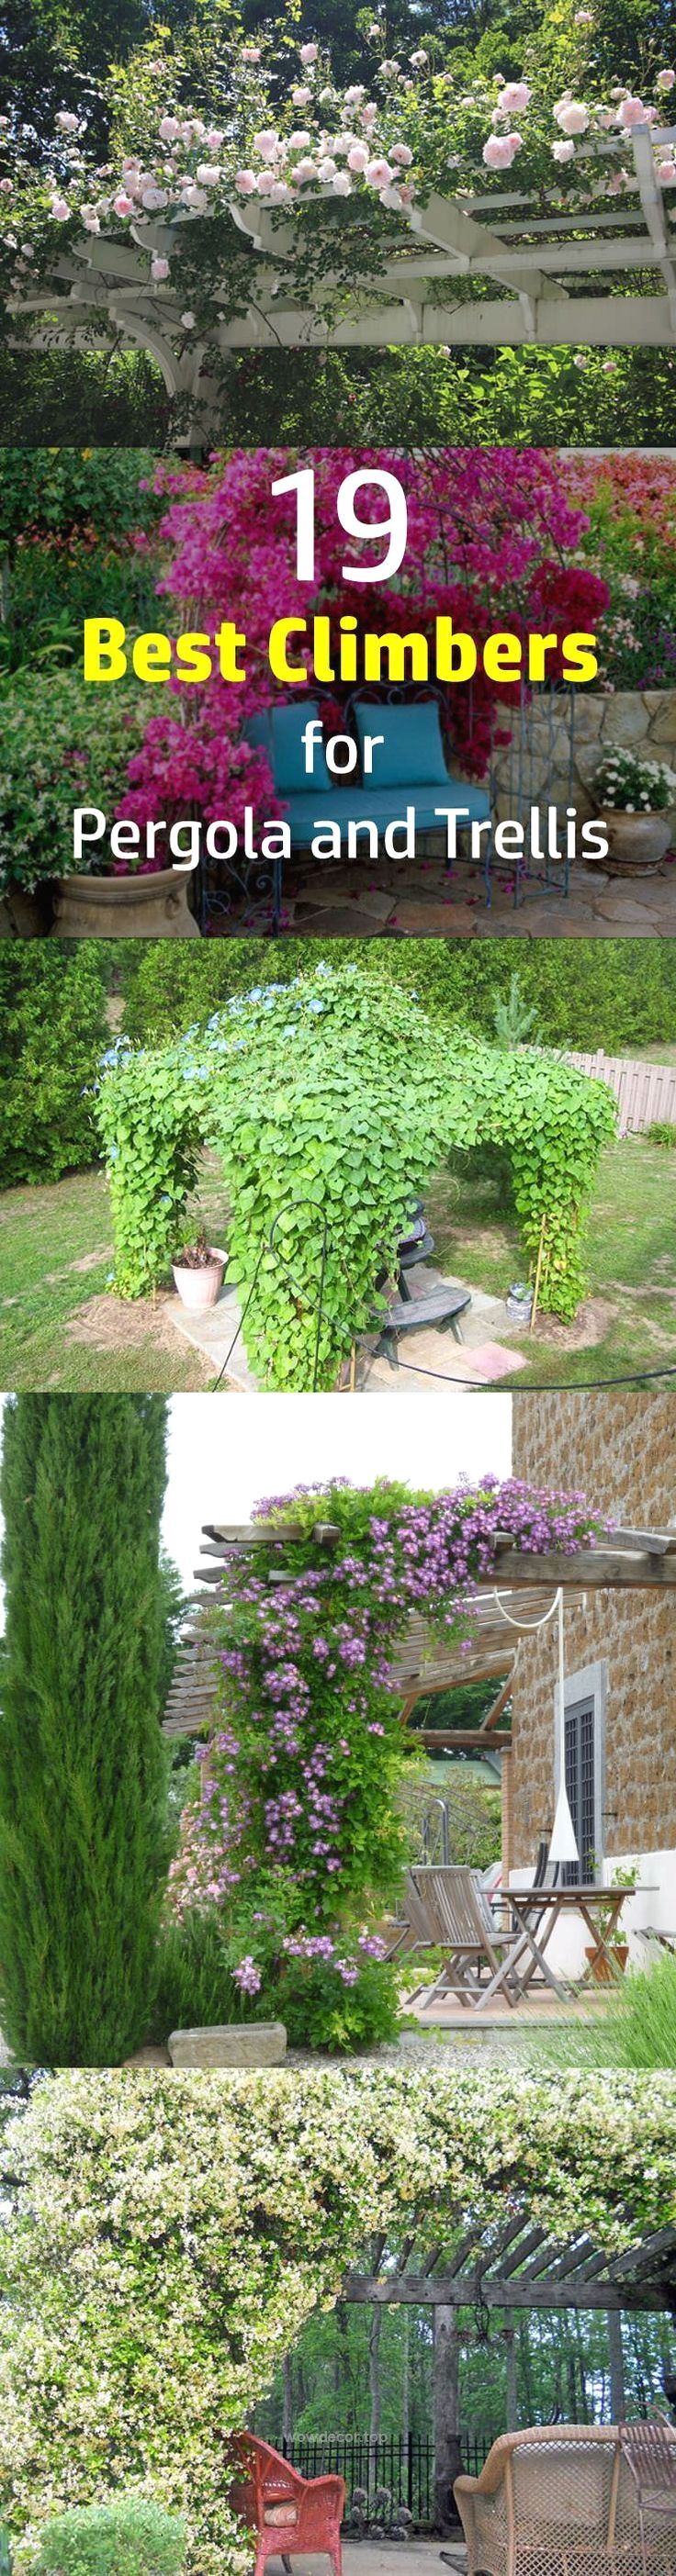 Awesome Plants for Small Gardens